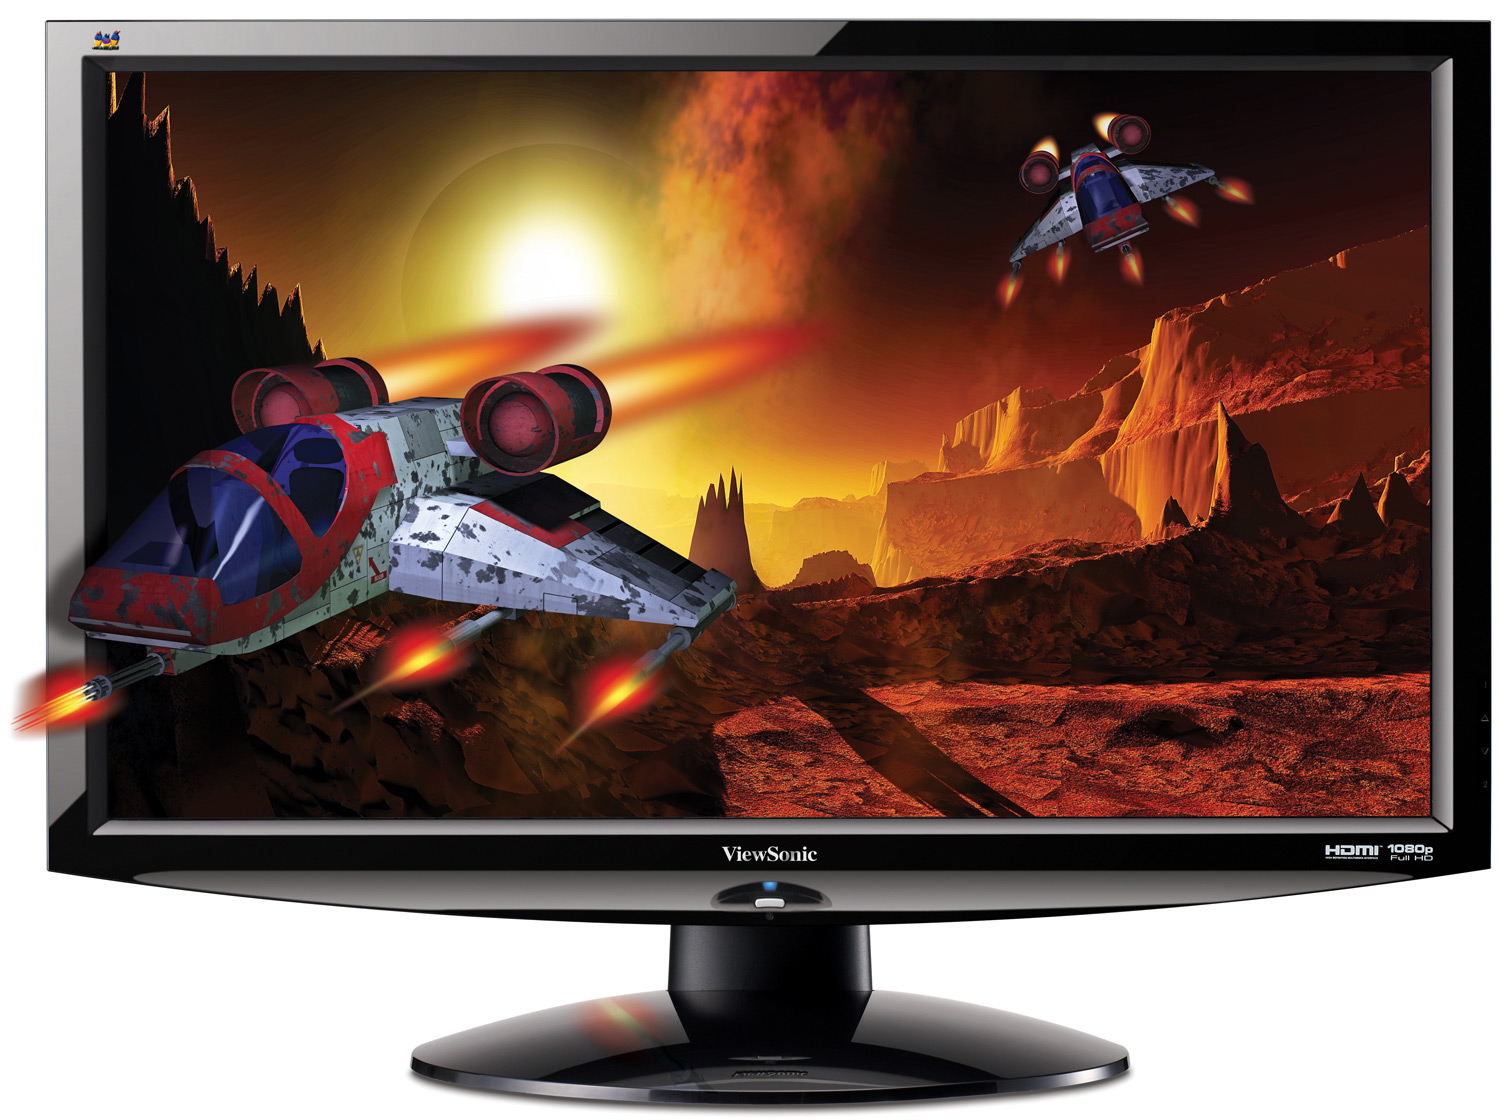 Review of the viewsonic v3d241wm led 3d capable monitor